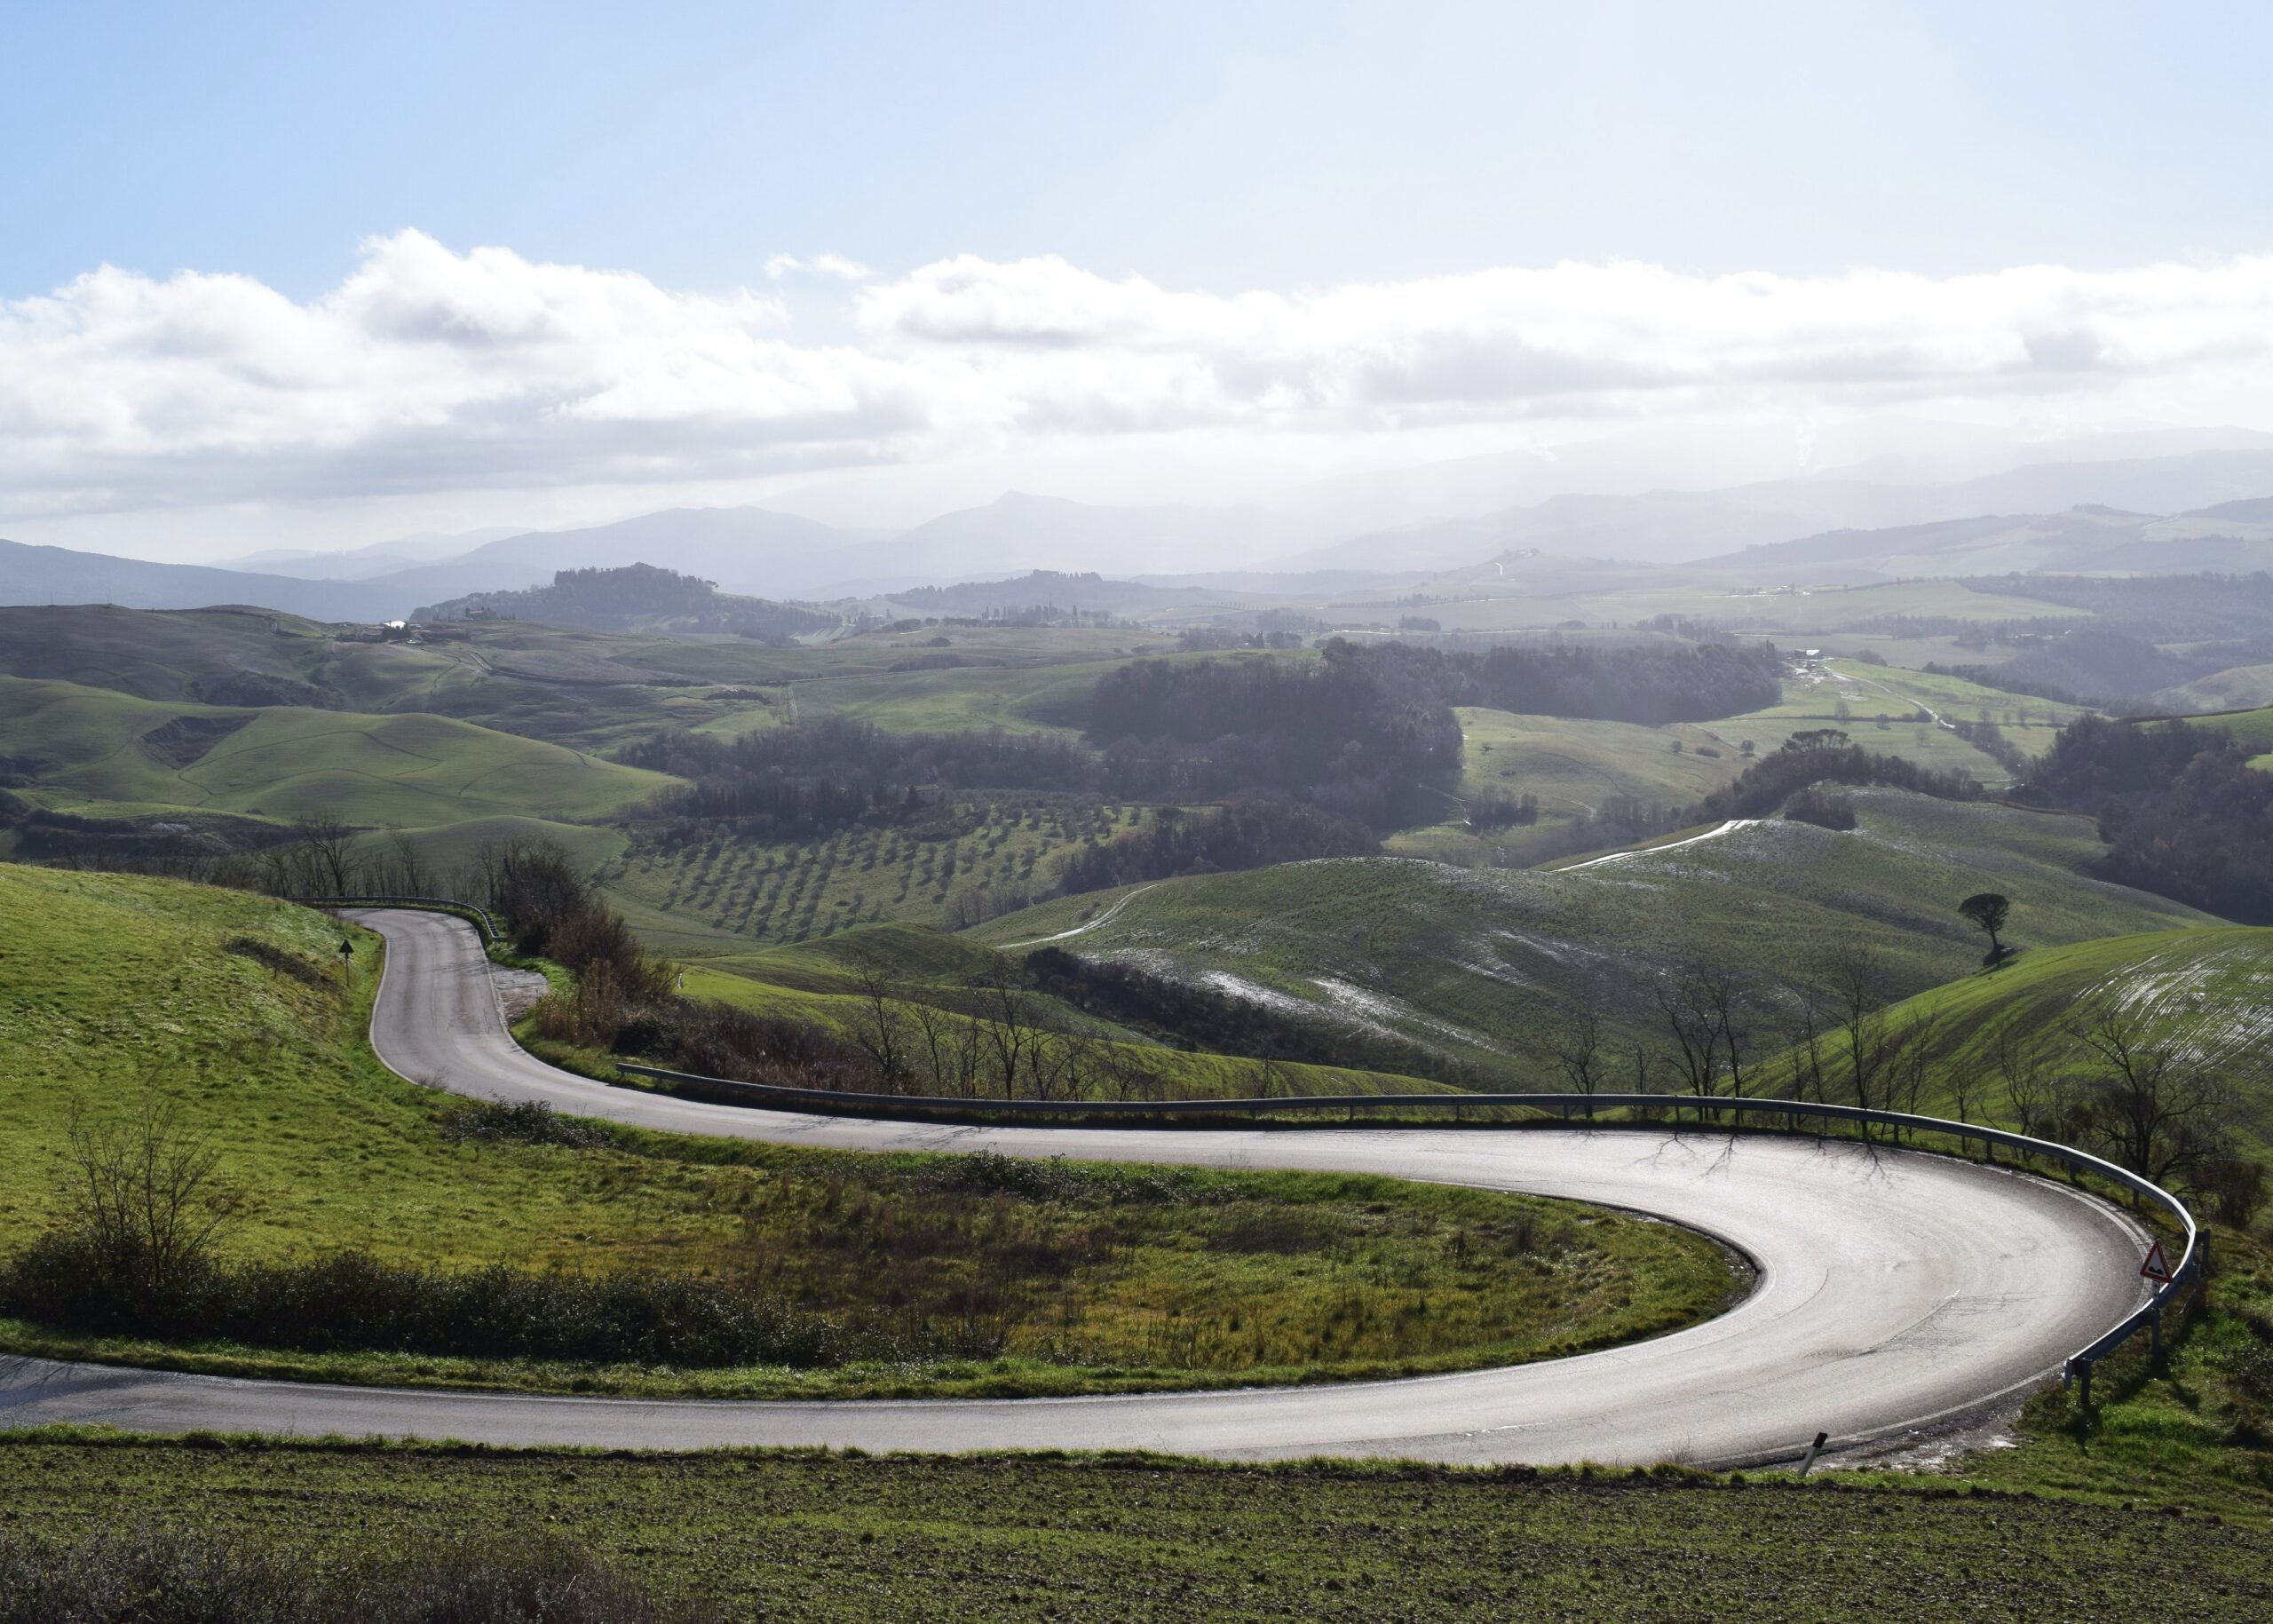 Cycling roads in Volterra, Tuscany